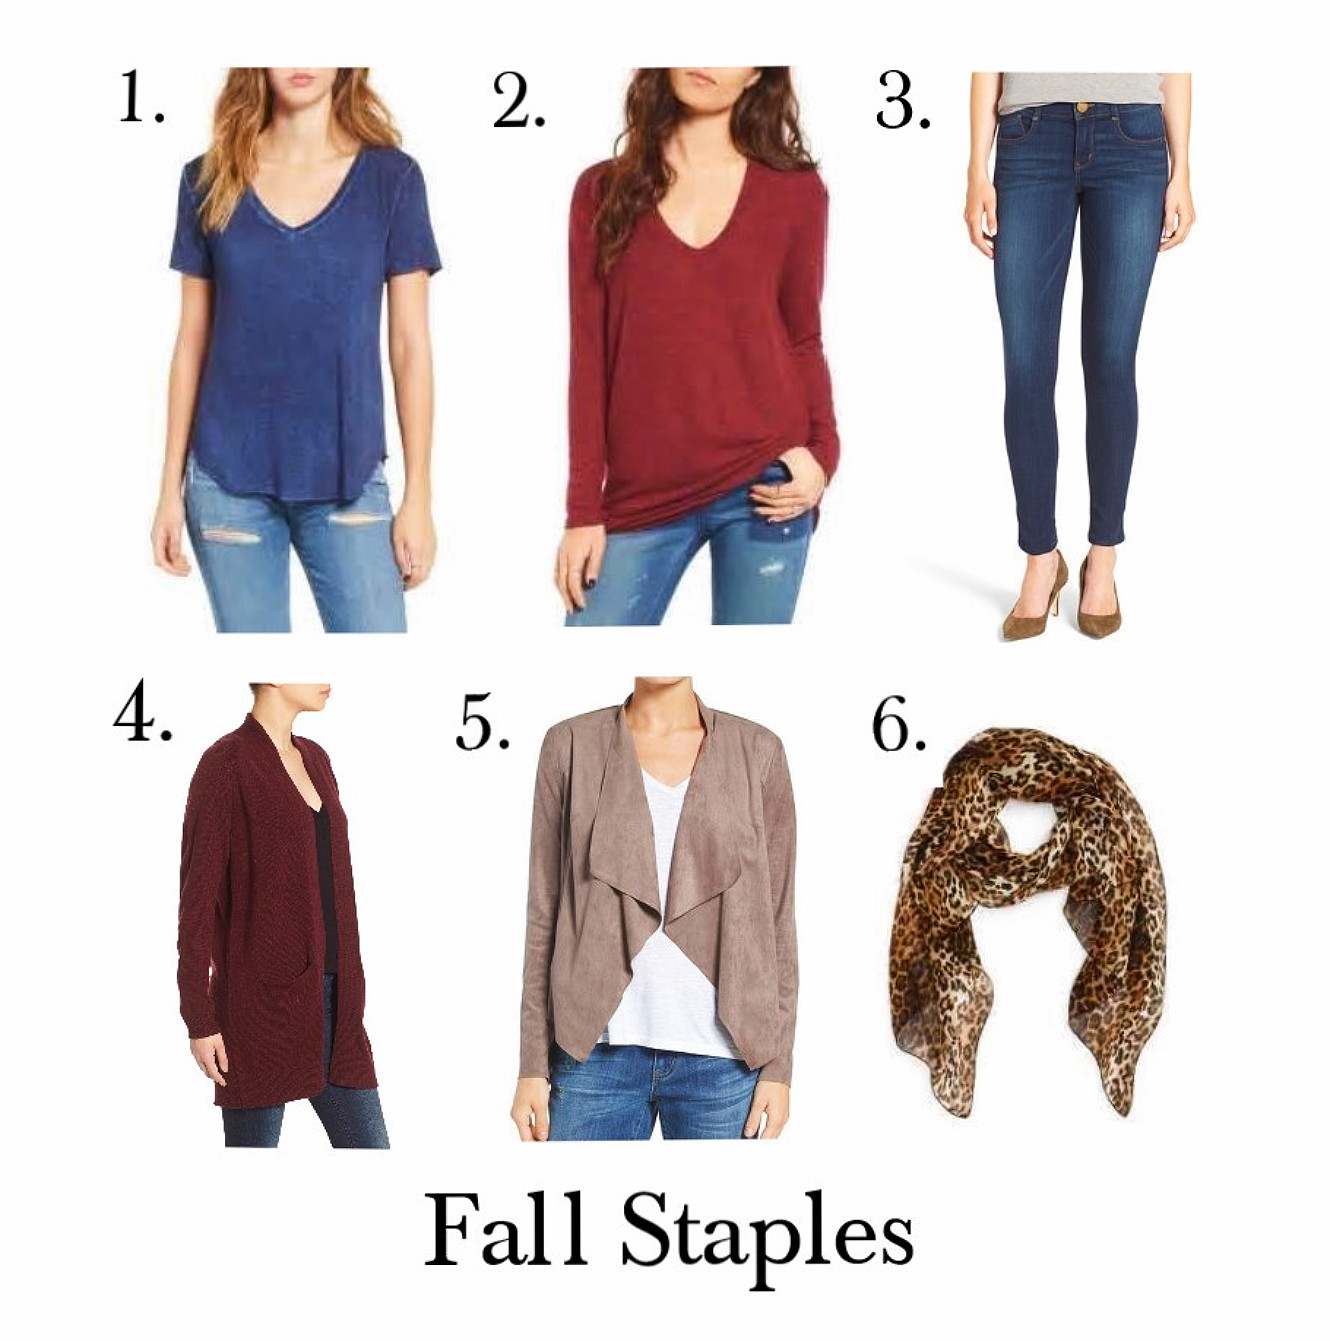 Clothing Items For Fall